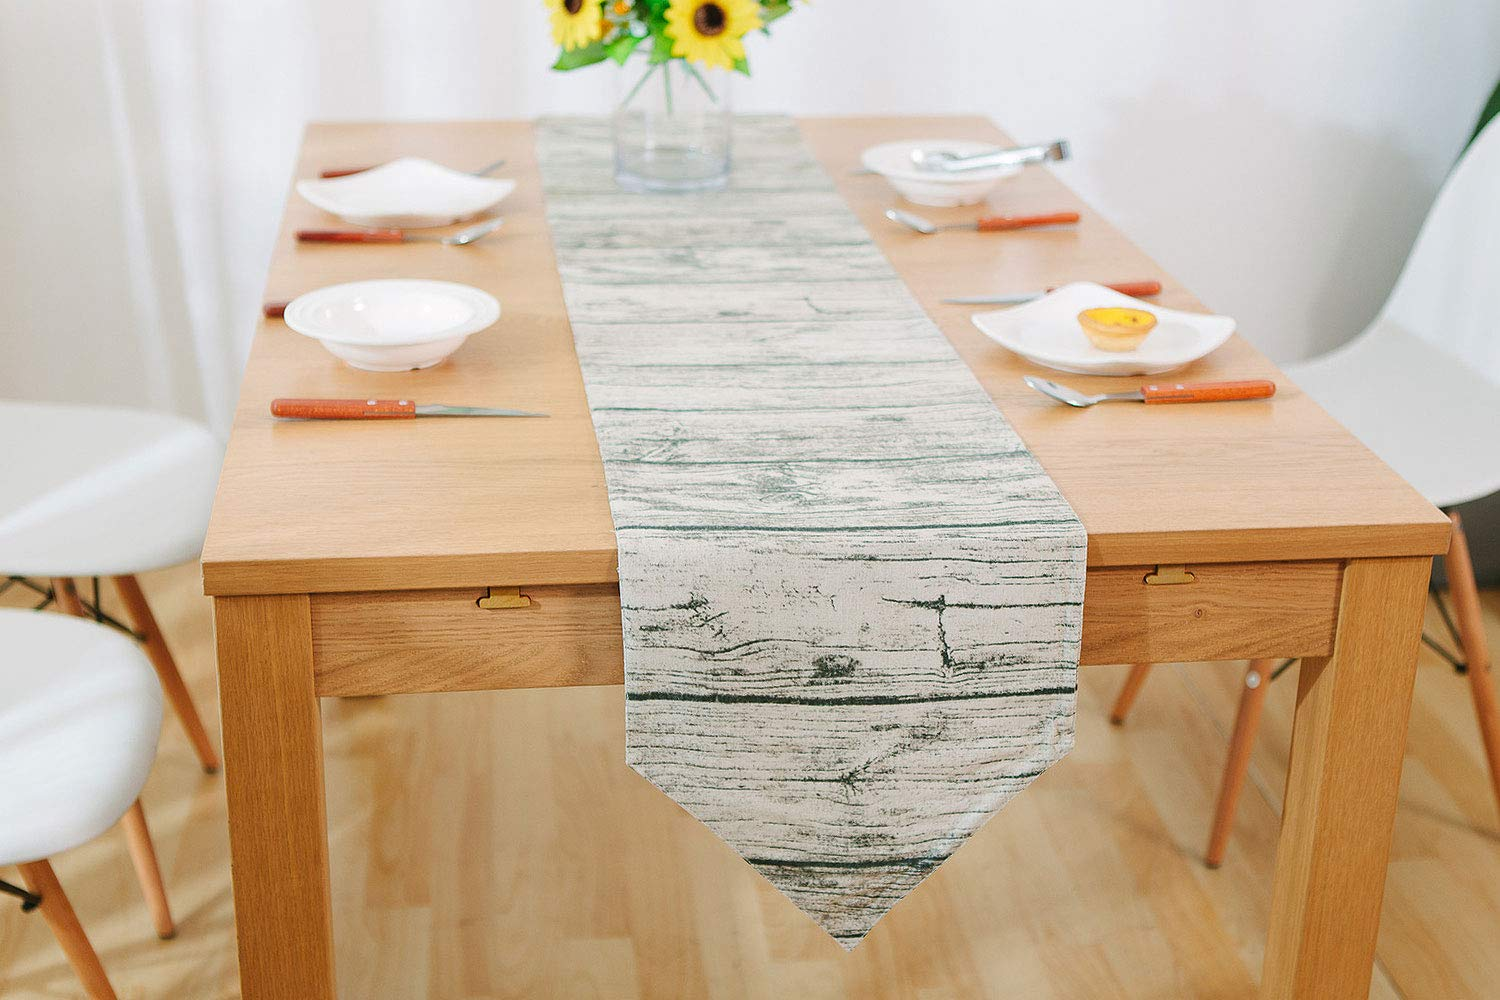 IBWell Vintage Modern Table Runner Dresser Scarf Table Cloth Cover for Wedding Party Dinner Decoration, 100% Natural Material, Cotton and Linen, Wood Grain Design